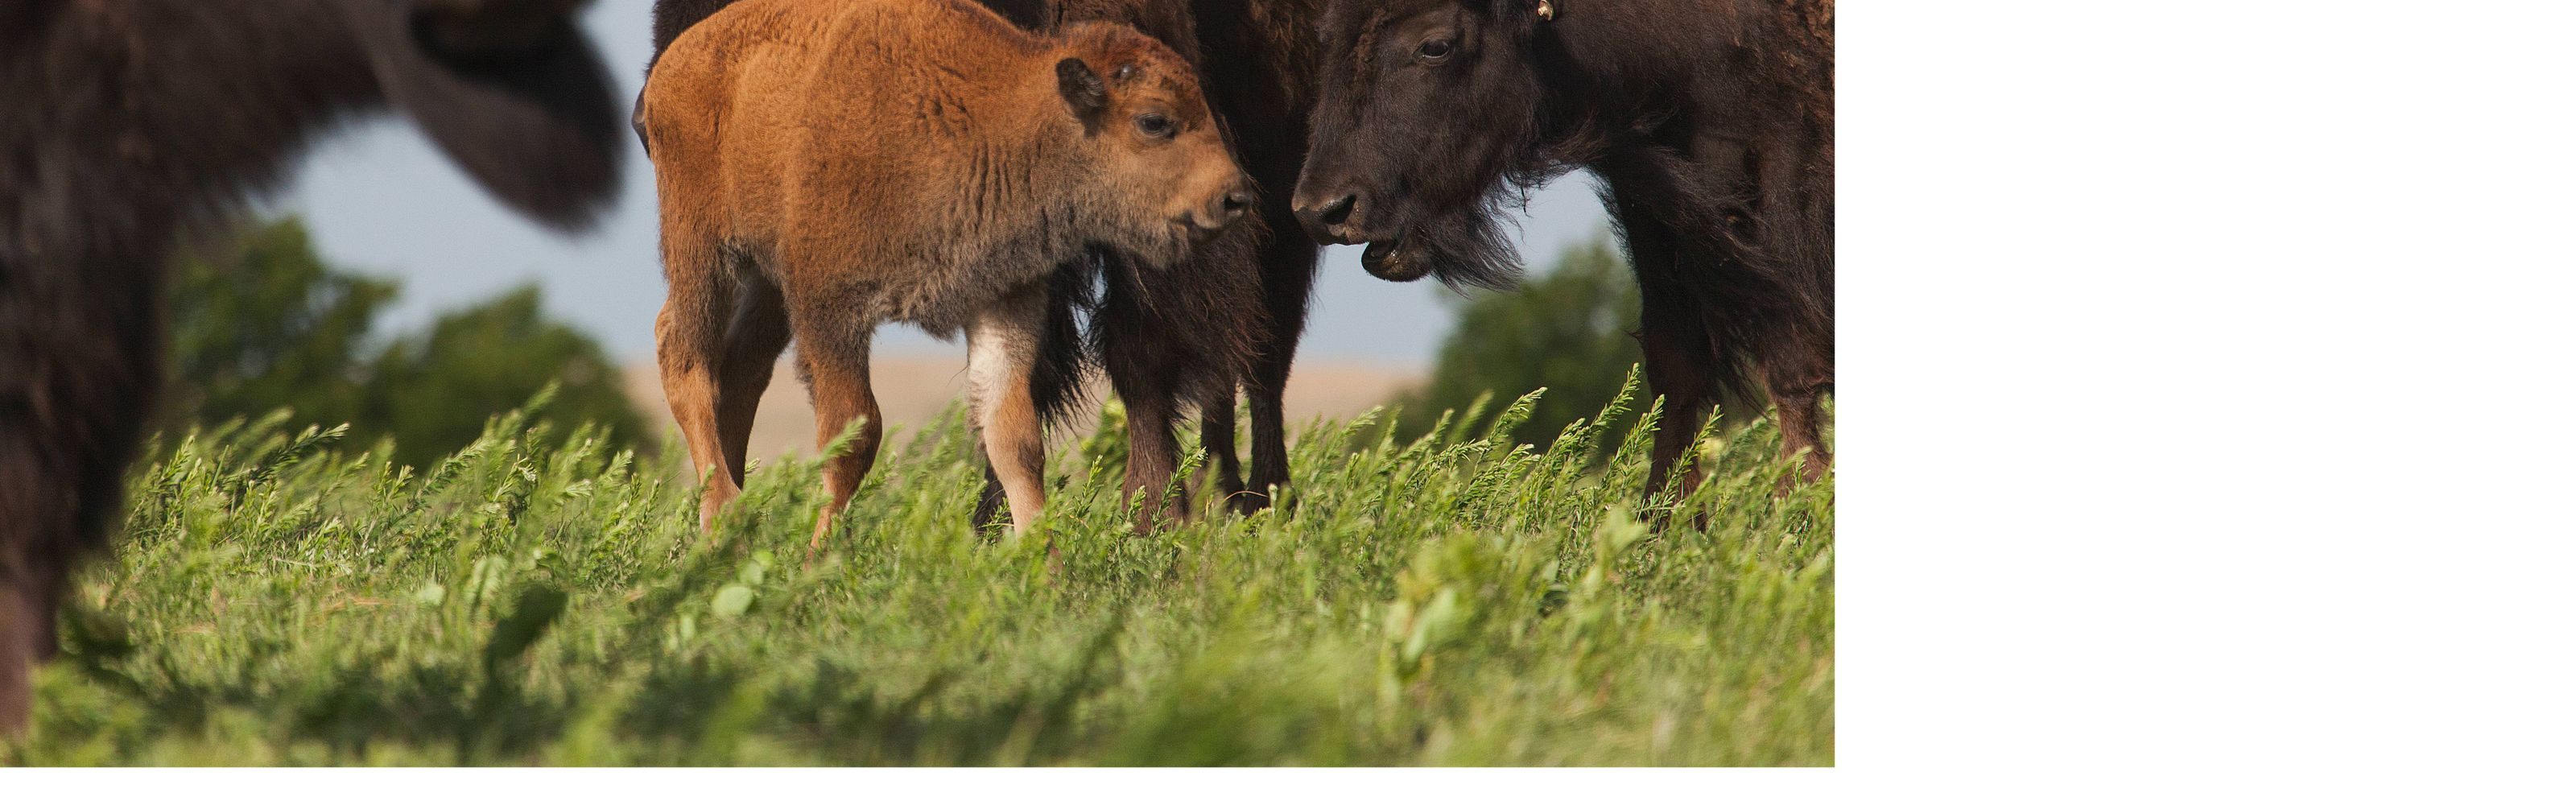 roam and graze the spring grasses across the more than 40,000 acre Tallgrass Prairie Preserve in Pawhuska, Oklahoma.